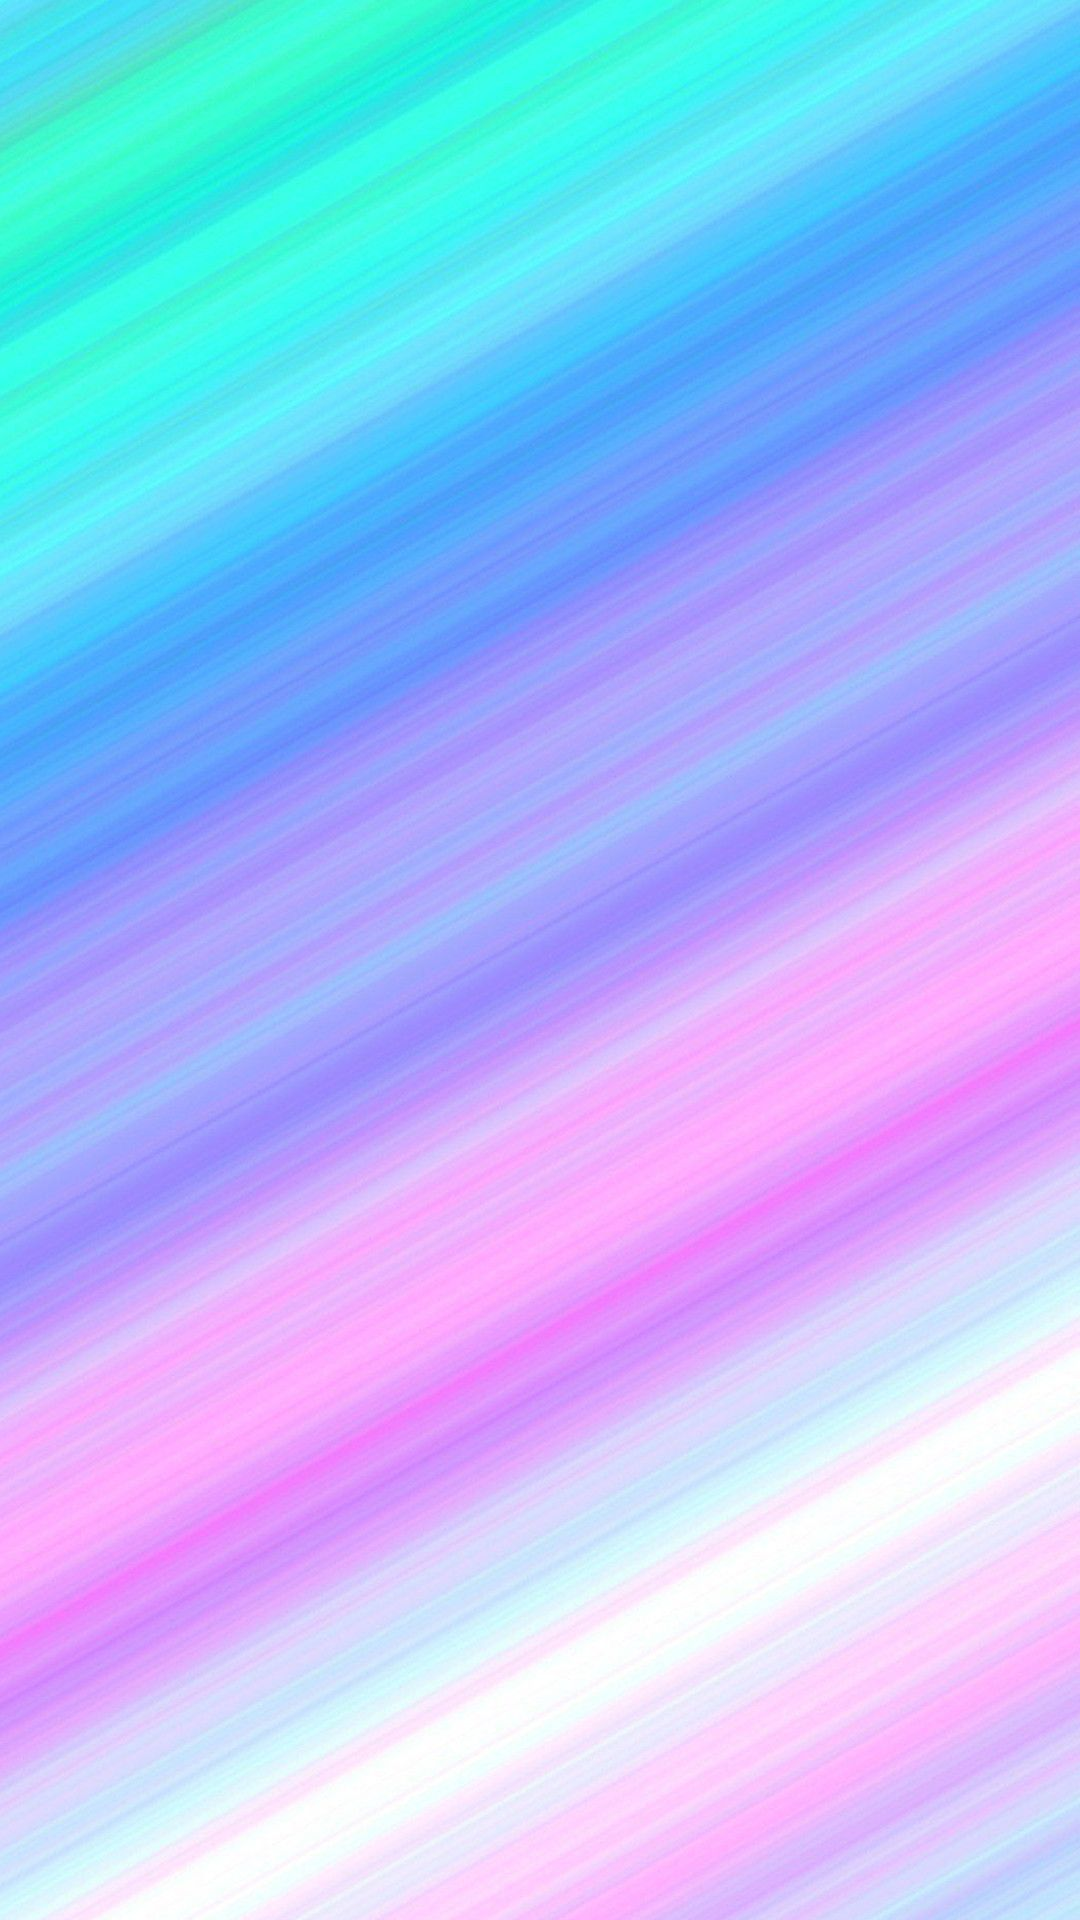 Aesthetic Pink And Blue Wallpaper Mobile Holographic Wallpapers S5 Wallpaper Pastel Background Wallpapers